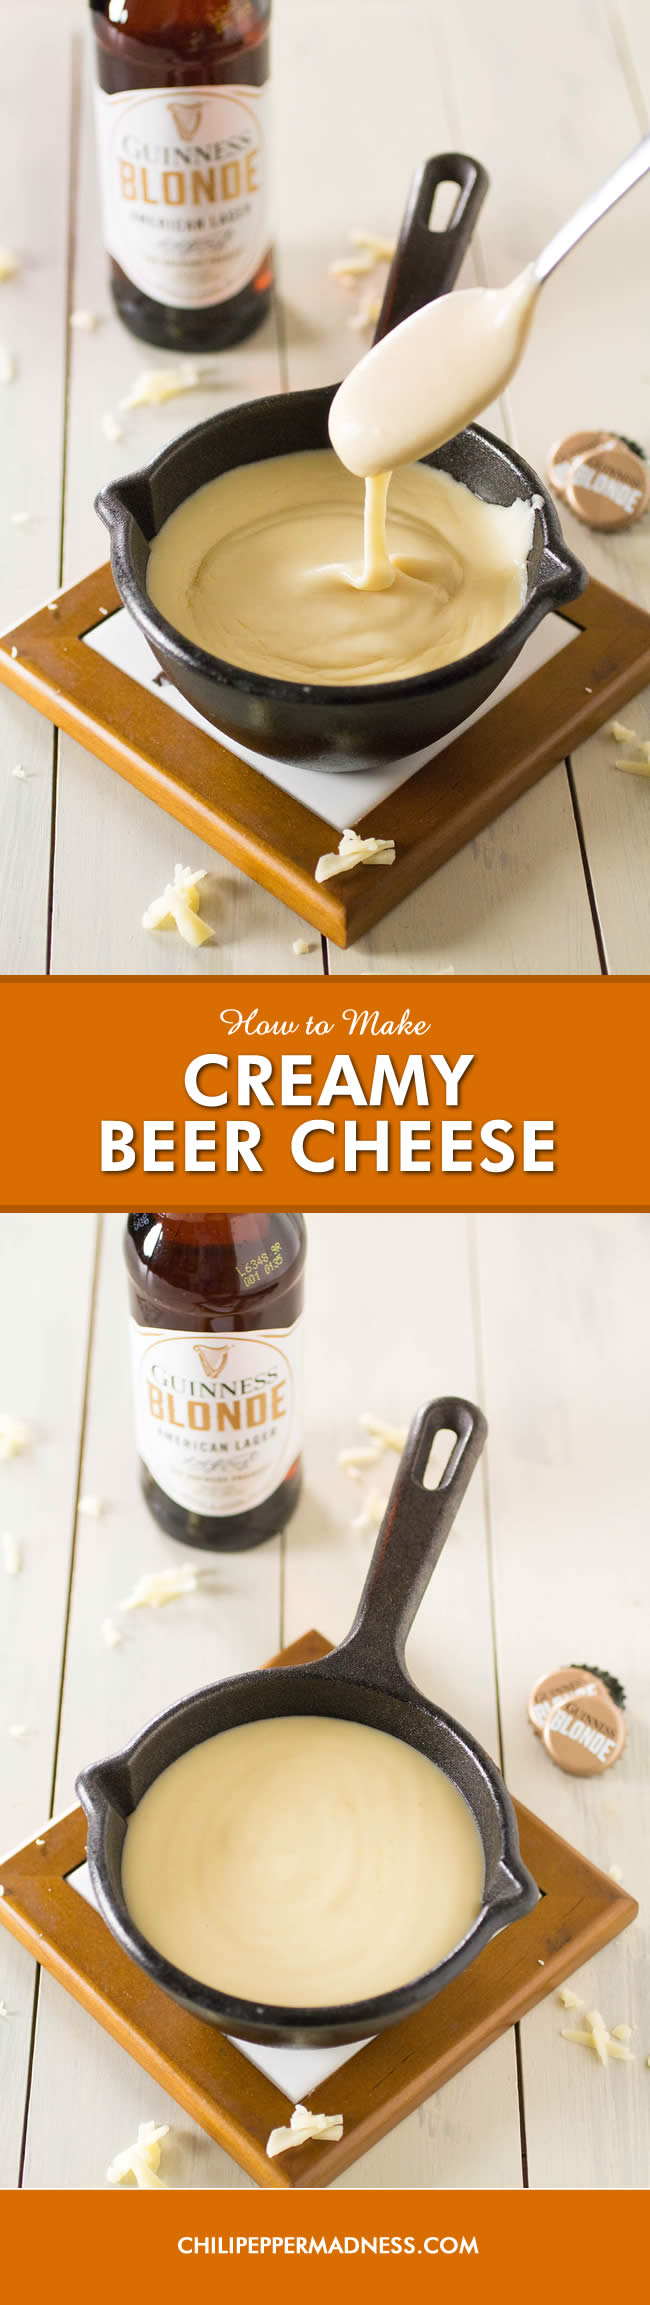 How to Make Creamy Beer Cheese - Recipe